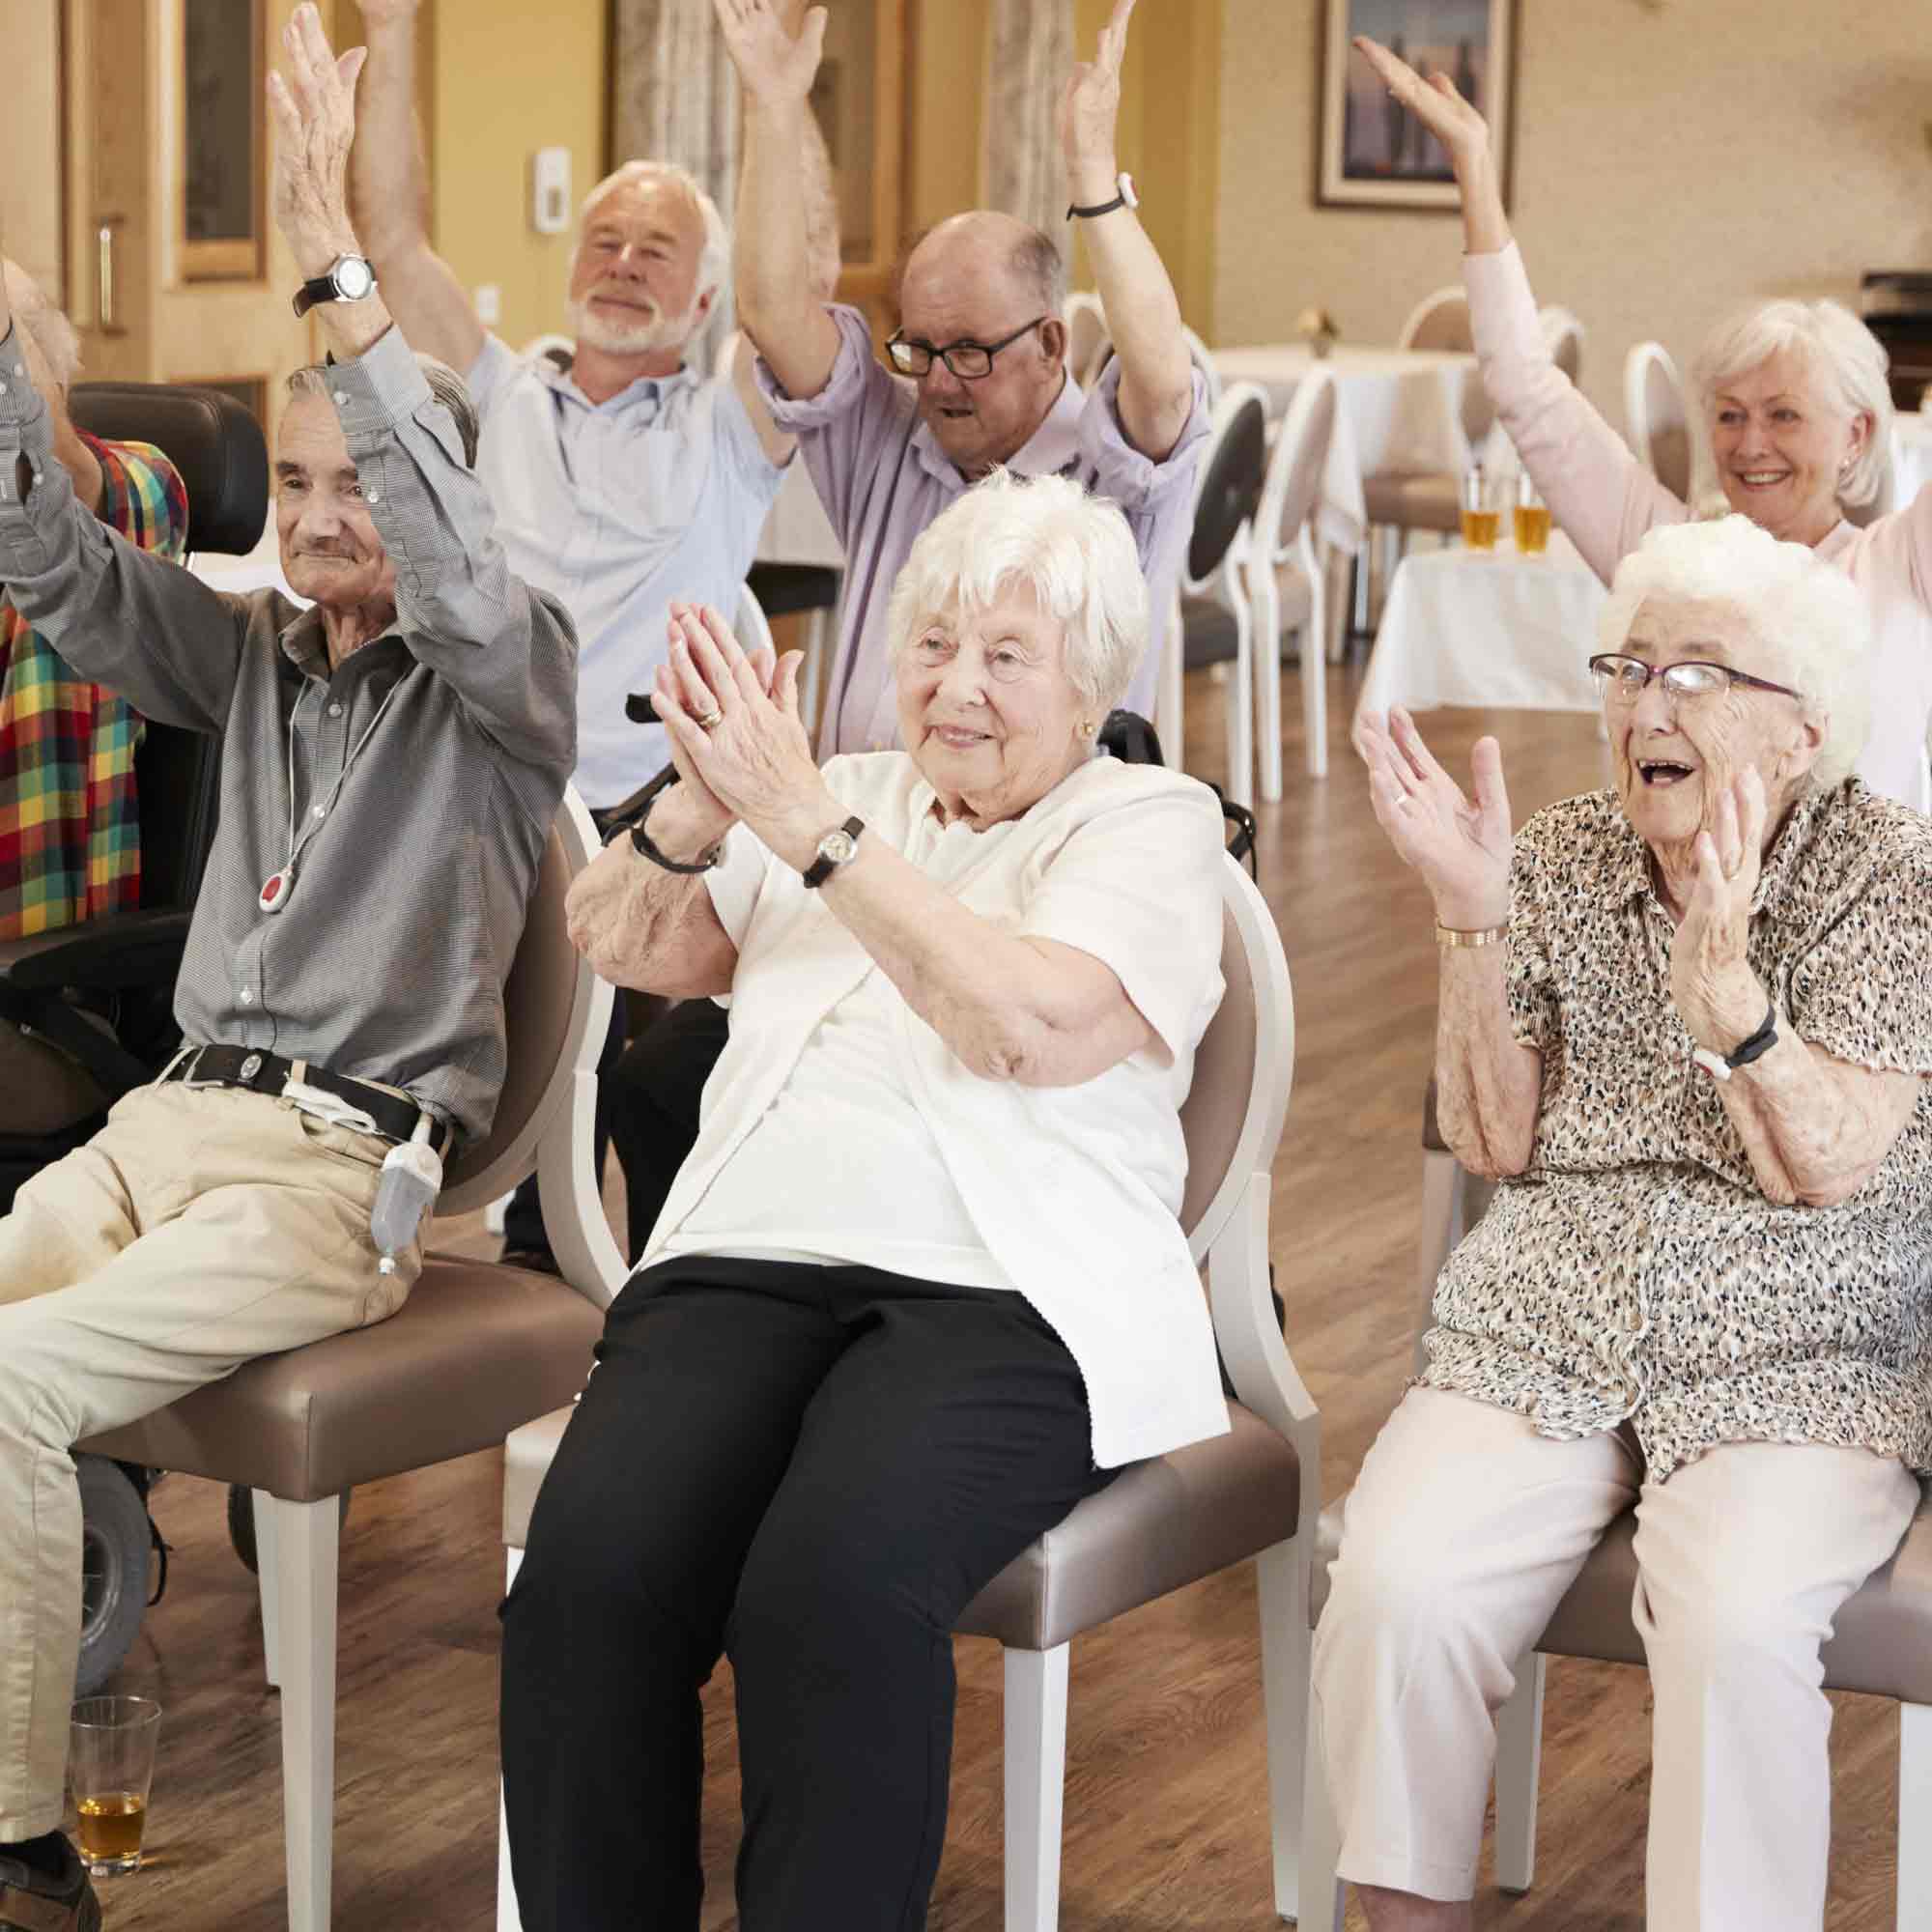 Assisted Living and Memory Care Upcoming Events Group - The Pinnacle of Southaven